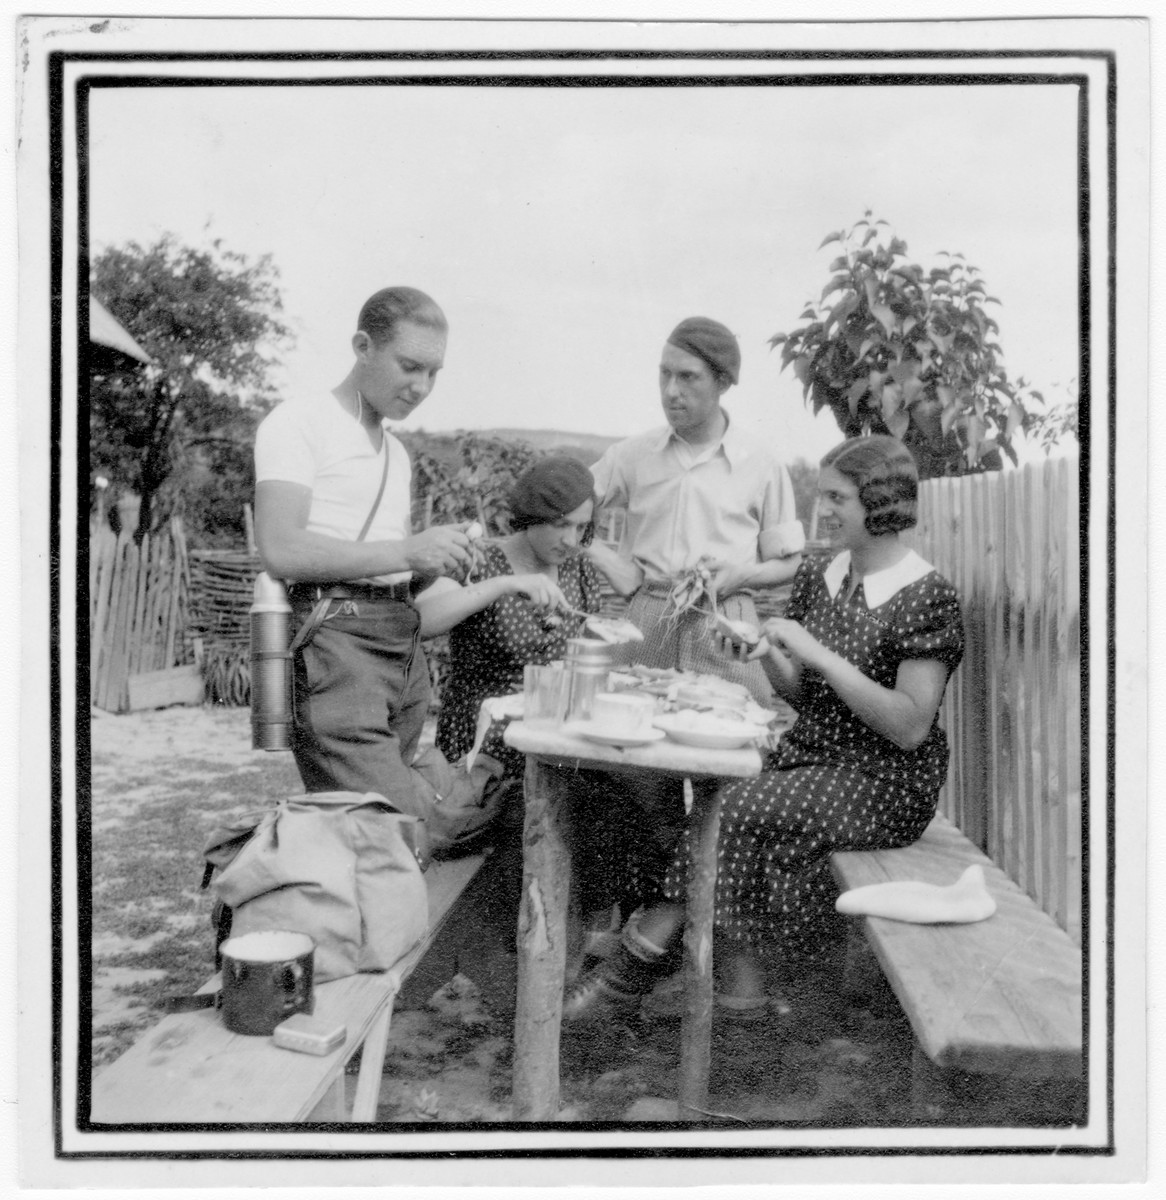 Four Romanian Jewish youth prepare a picnic.  Among those pictured are Anna and Miriam Segal.